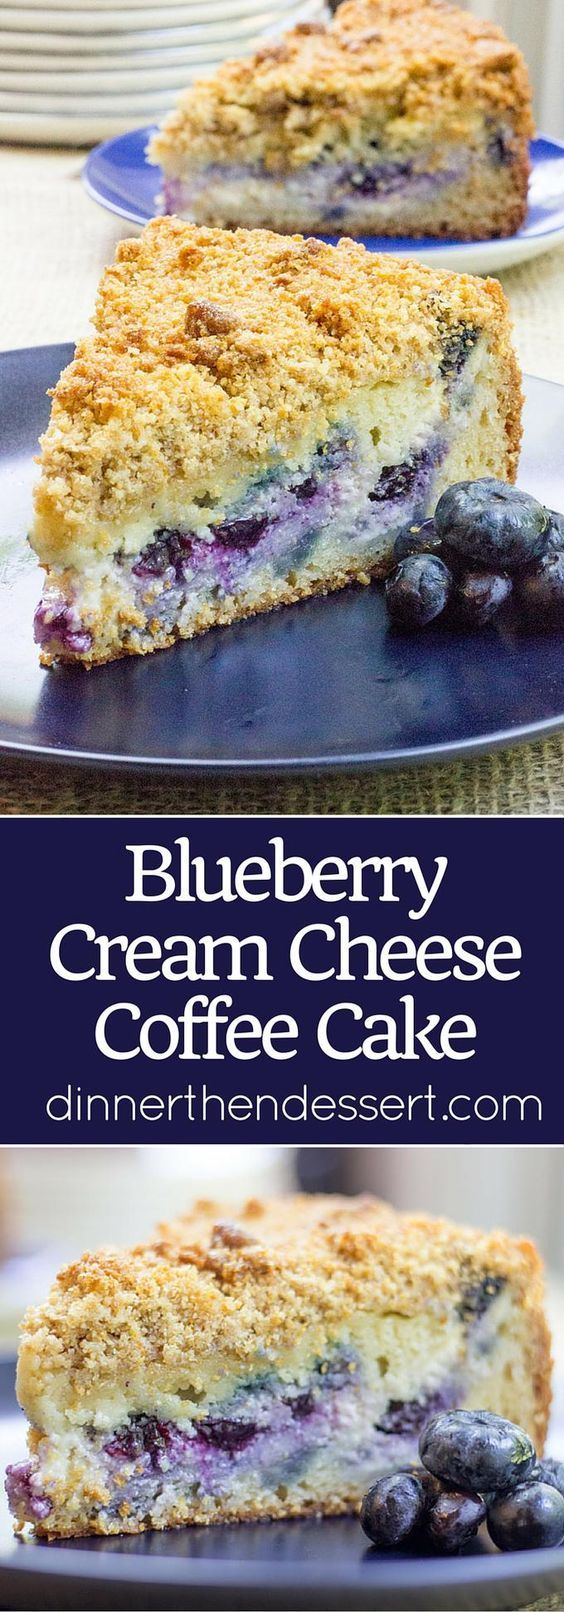 Blueberry Cream Cheese Coffee Cake with a tender center creamy filling and a…